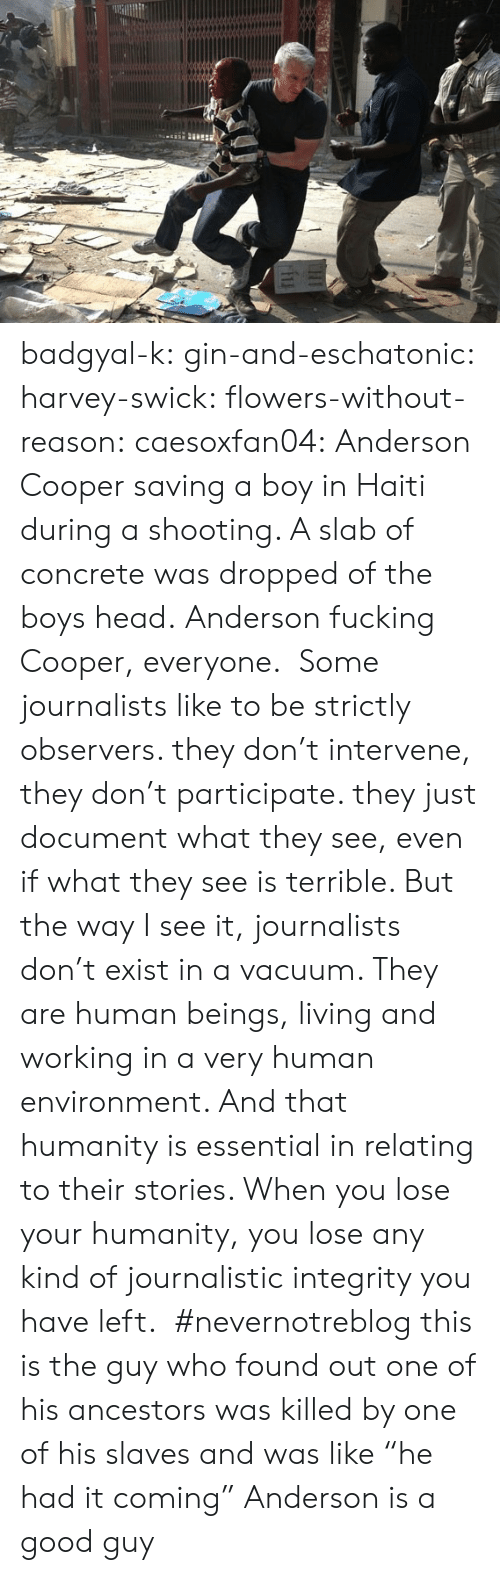 """observers: badgyal-k: gin-and-eschatonic:  harvey-swick:  flowers-without-reason:  caesoxfan04: Anderson Cooper saving a boy in Haiti during a shooting. A slab of concrete was dropped of the boys head. Anderson fucking Cooper, everyone. Some journalists like to be strictly observers. they don't intervene, they don't participate. they just document what they see, even if what they see is terrible. But the way I see it, journalists don't exist in a vacuum. They are human beings, living and working in a very human environment. And that humanity is essential in relating to their stories. When you lose your humanity, you lose any kind of journalistic integrity you have left.  #nevernotreblog  this is the guy who found out one of his ancestors was killed by one of his slaves and was like """"he had it coming""""    Anderson is a good guy"""